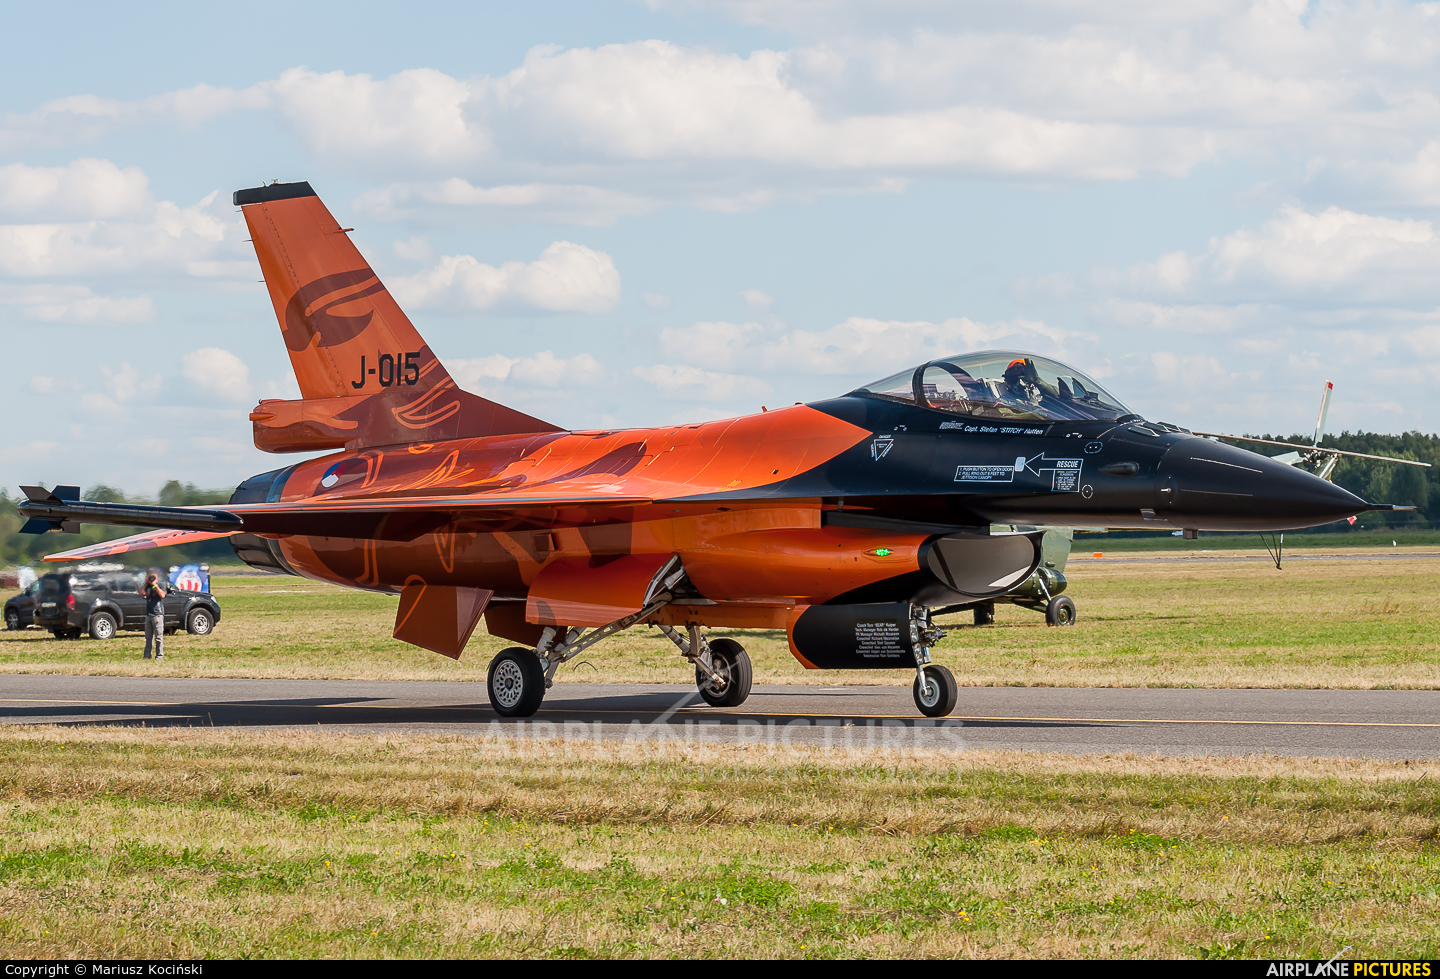 Netherlands - Air Force J-015 aircraft at Radom - Sadków